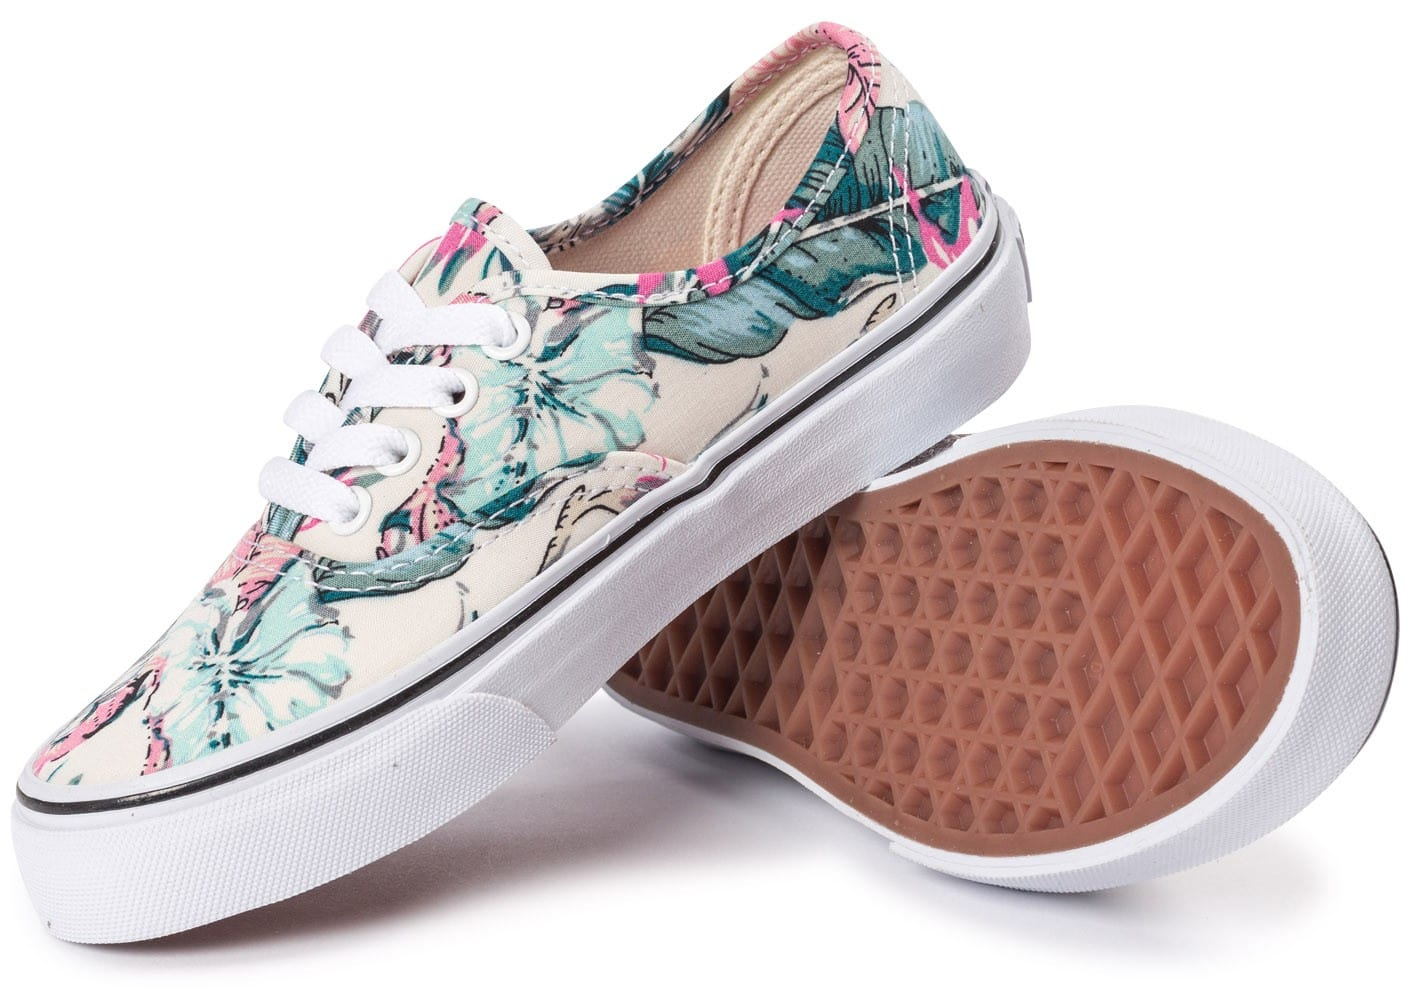 soldes vans authentic enfant floral chaussures toutes les baskets sold es chausport. Black Bedroom Furniture Sets. Home Design Ideas